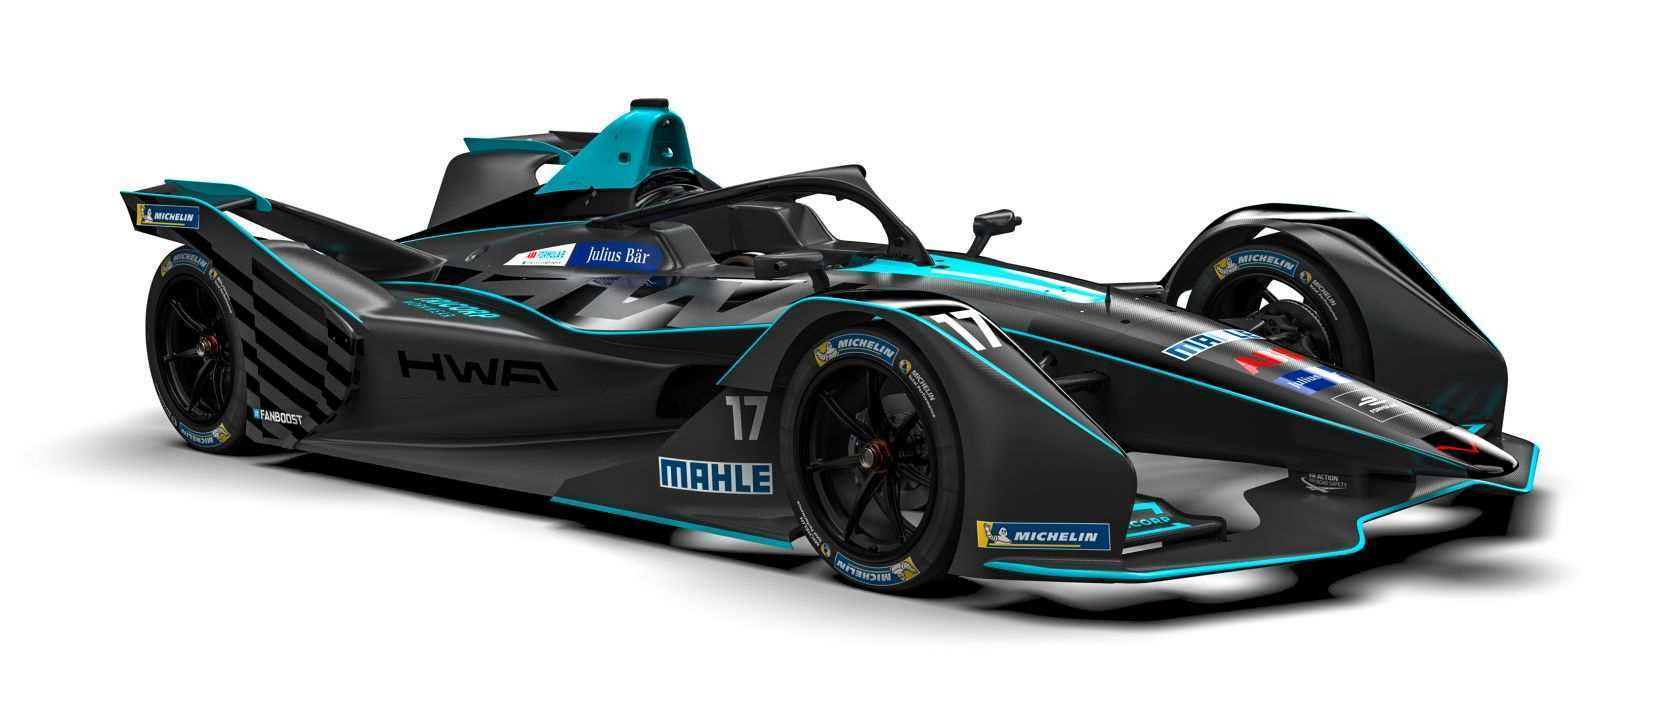 41 New Mercedes Formula E 2019 Research New